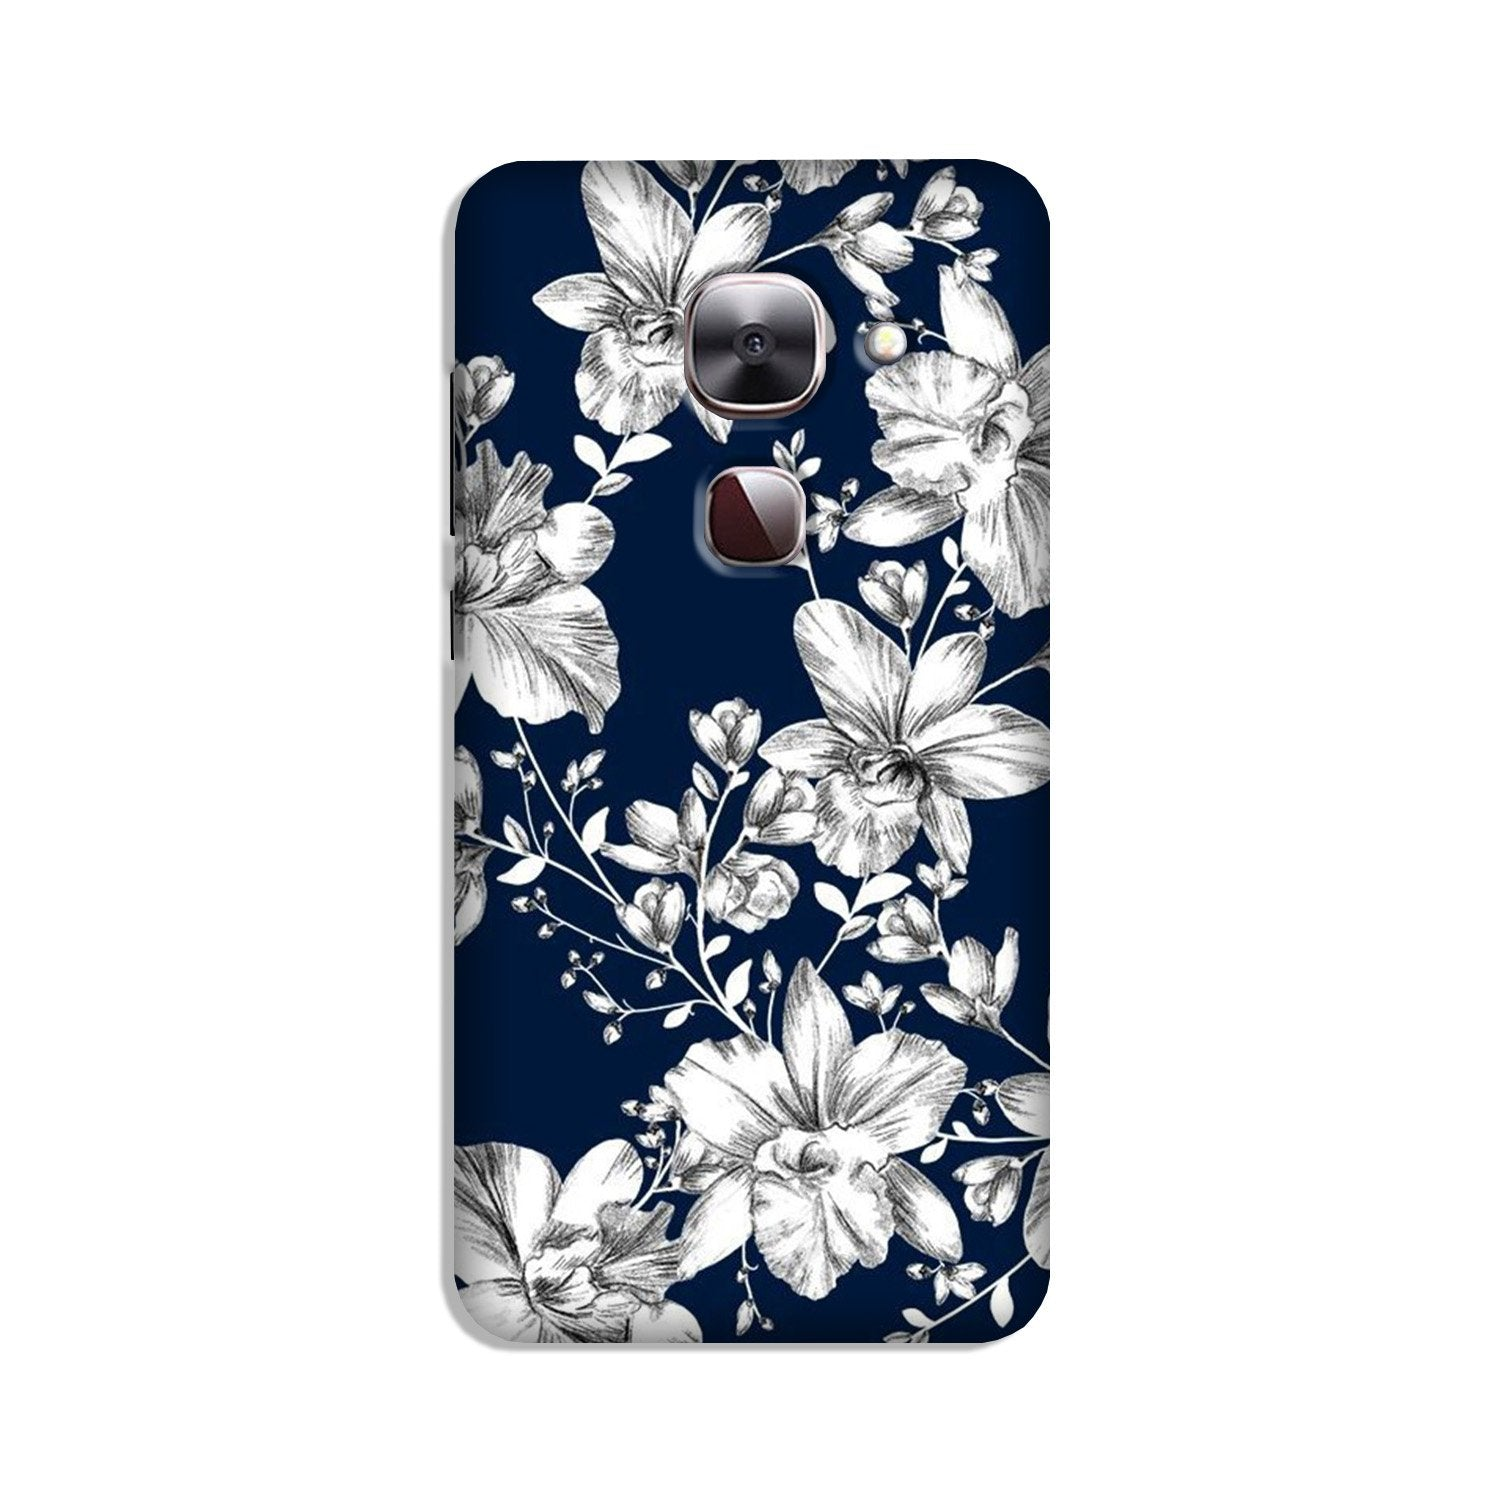 White flowers Blue Background Case for LeEco le 2s